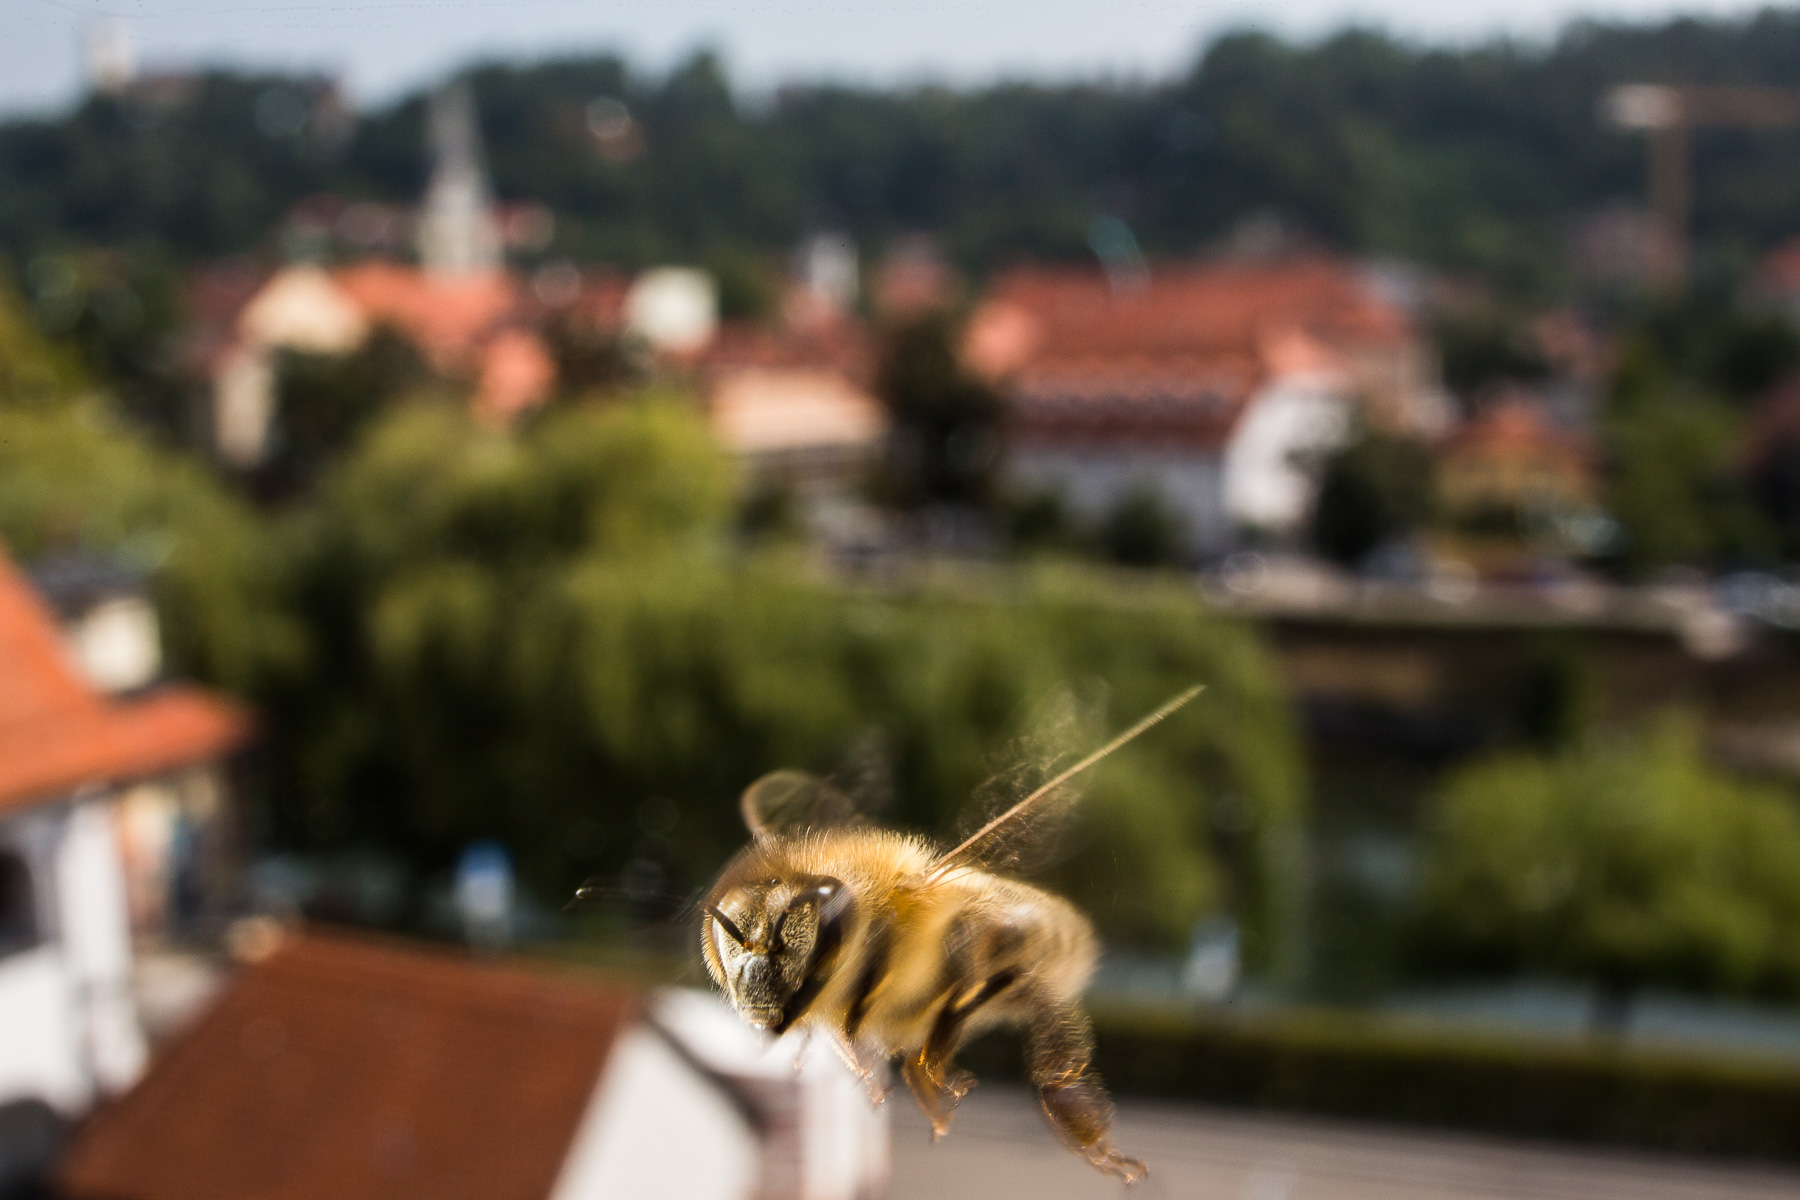 A bee in flight over the city center of Ljubljana, where they have enough pasture in a 3 km radius from anywhere in the city. Most bees cannot fly for food much further than 3 km.